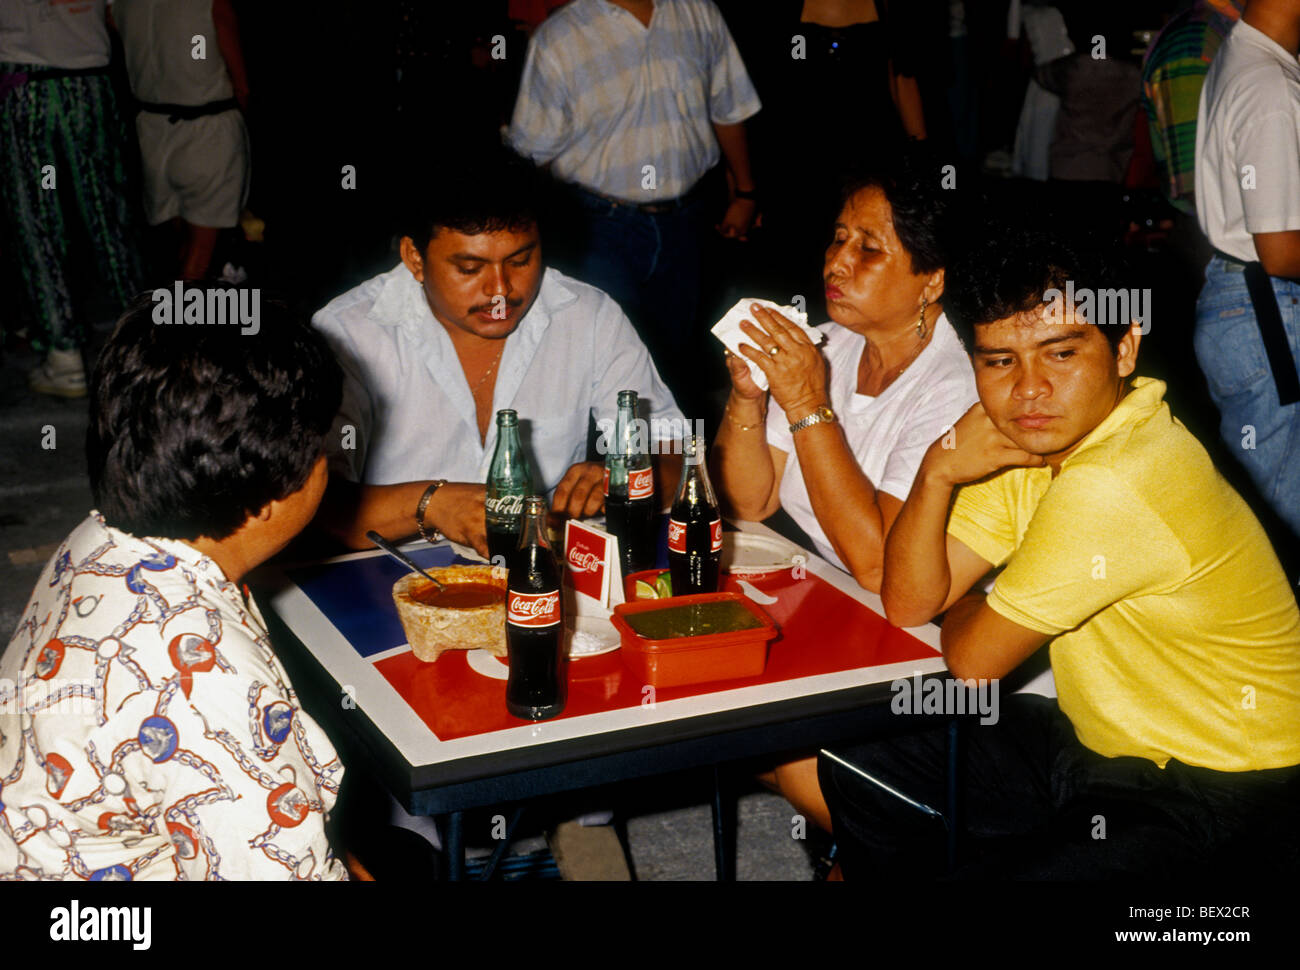 Mexicans Mexican People Family Eating At Restaurant Food Court And Drink City Of Cancun Quintana Roo State Mexico